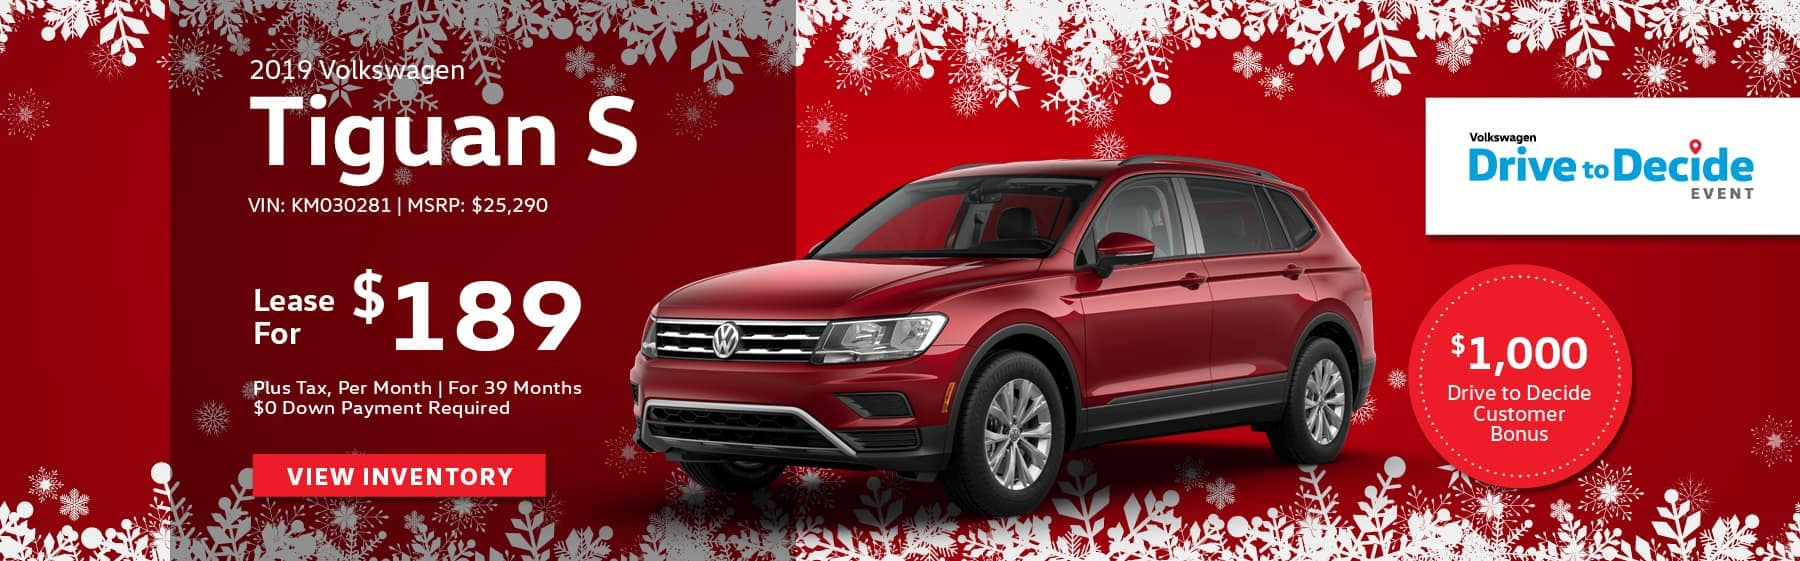 Lease the 2019 Volkswagen Tiguan S for $189 plus tax for 39 months. $0 Down payment required.